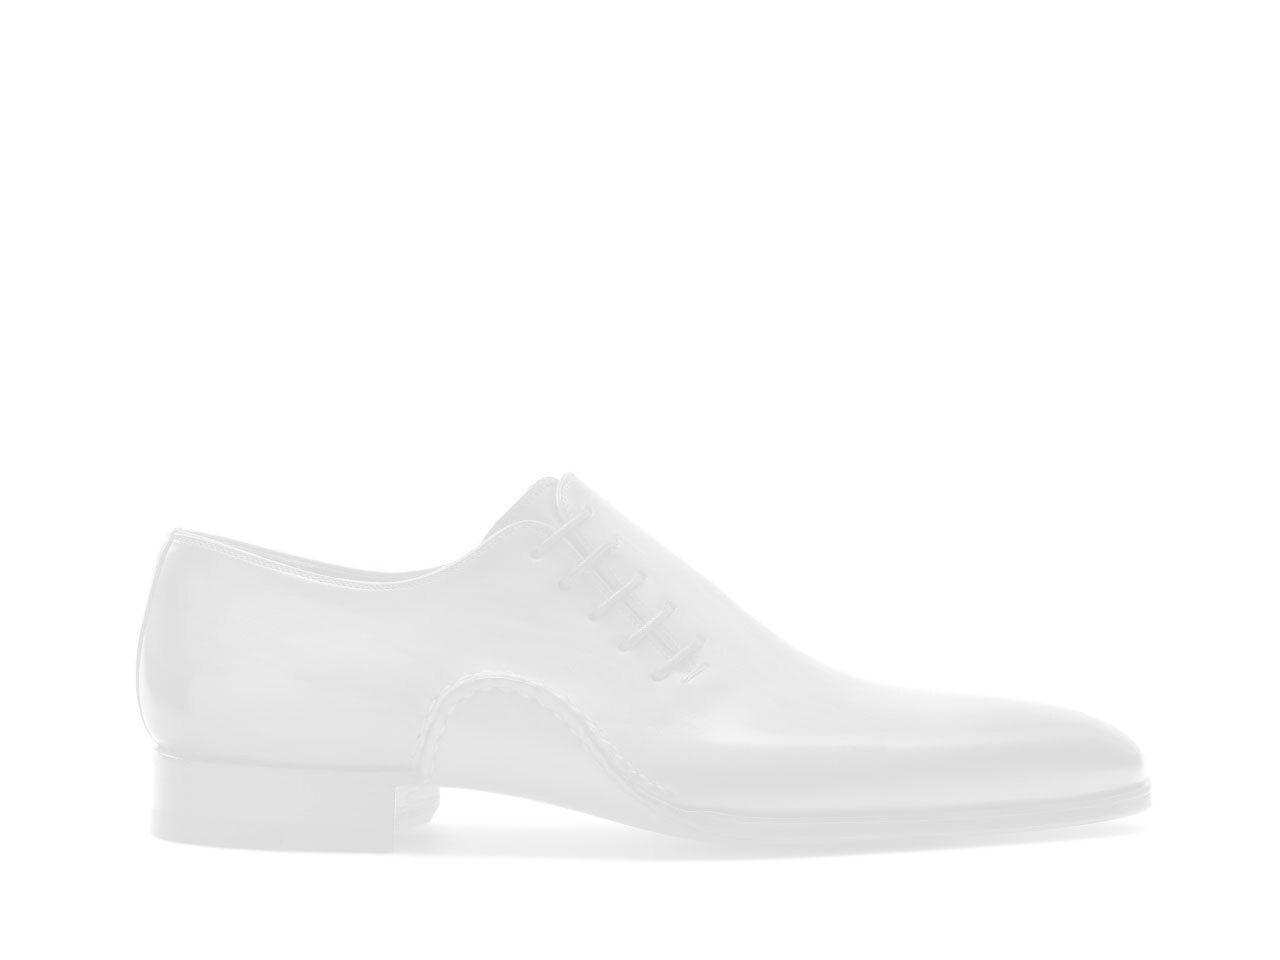 Side view of the Magnanni Merino Grey Men's Sneakers